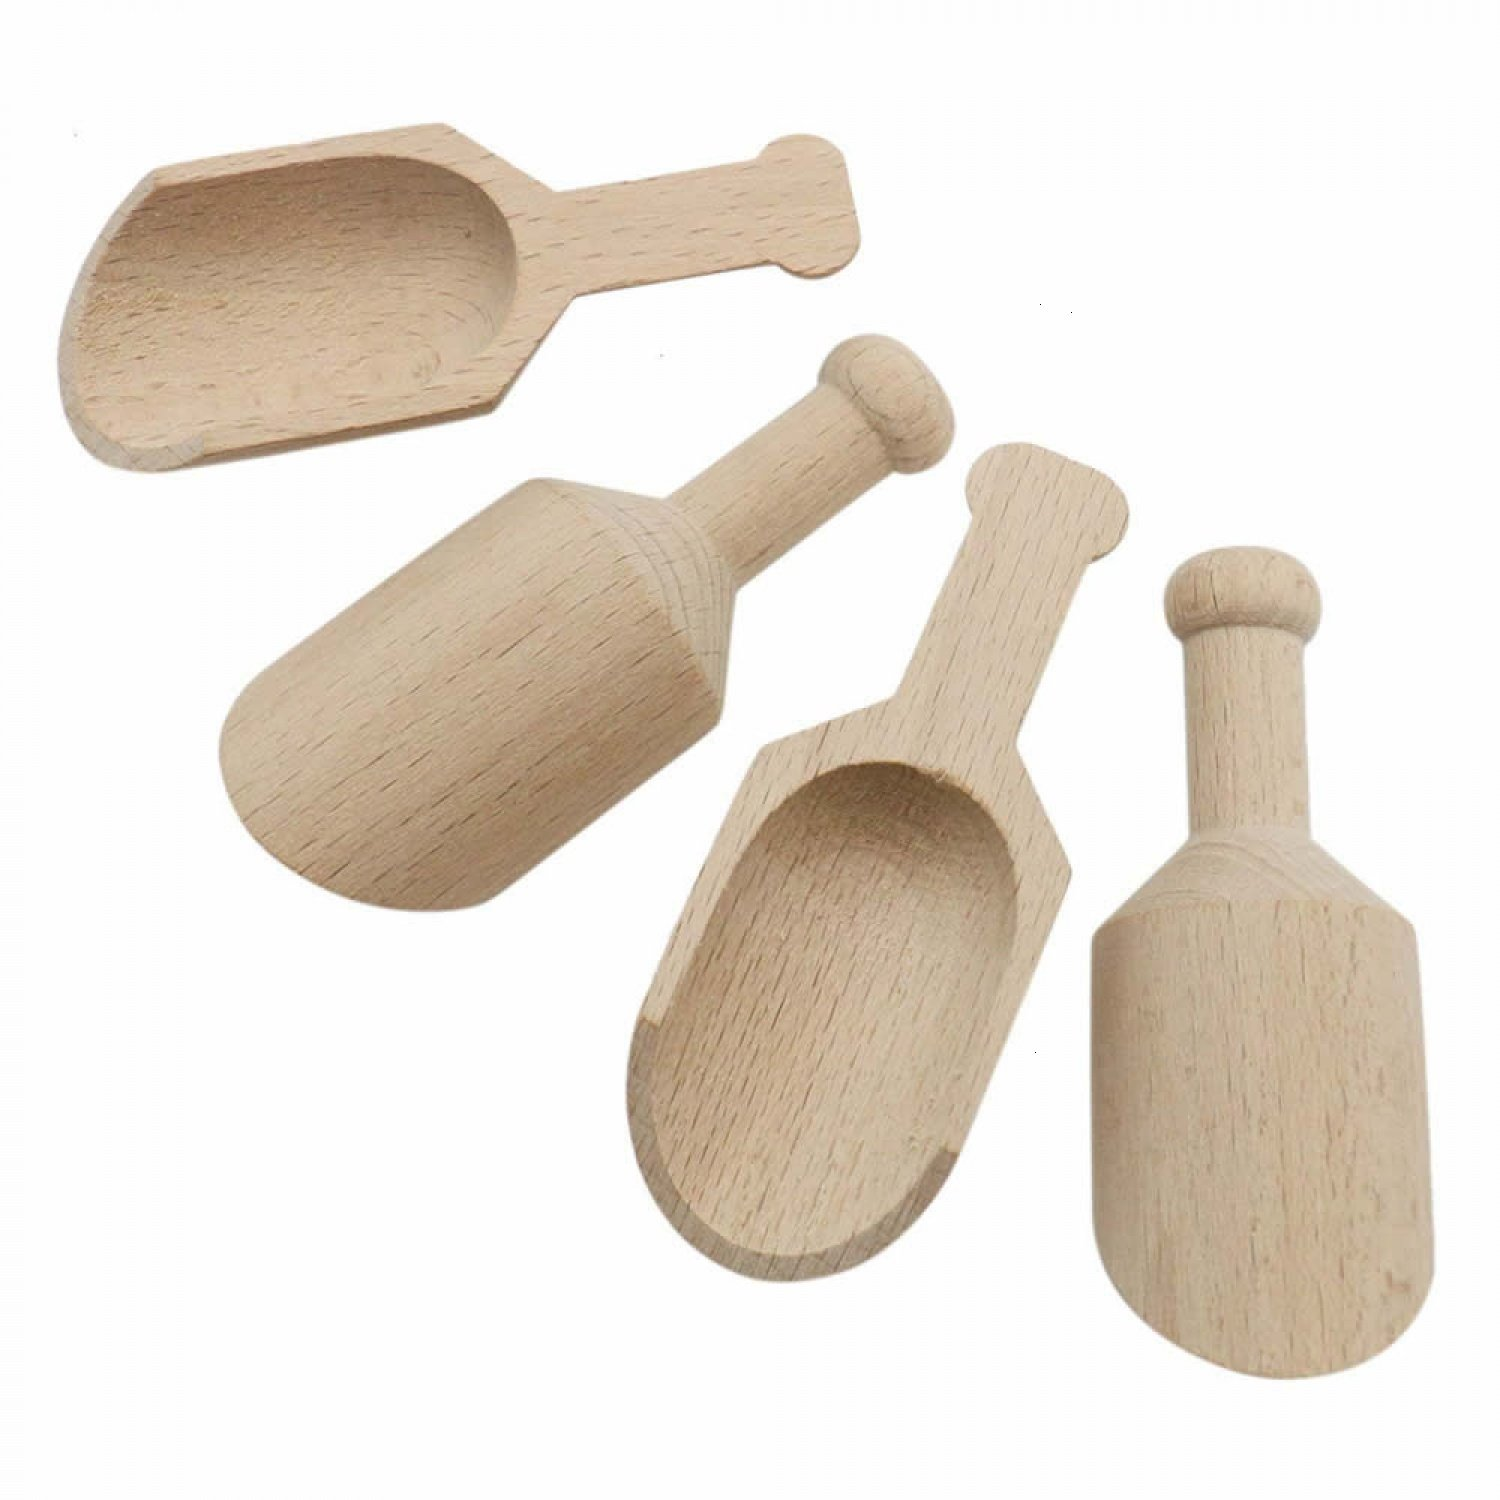 Buorsa 20 Pcs Mini Wooden Scoops for Bath Salts Essential Wooden Candy Spoon Scoops Salt Scoops,80X30mm